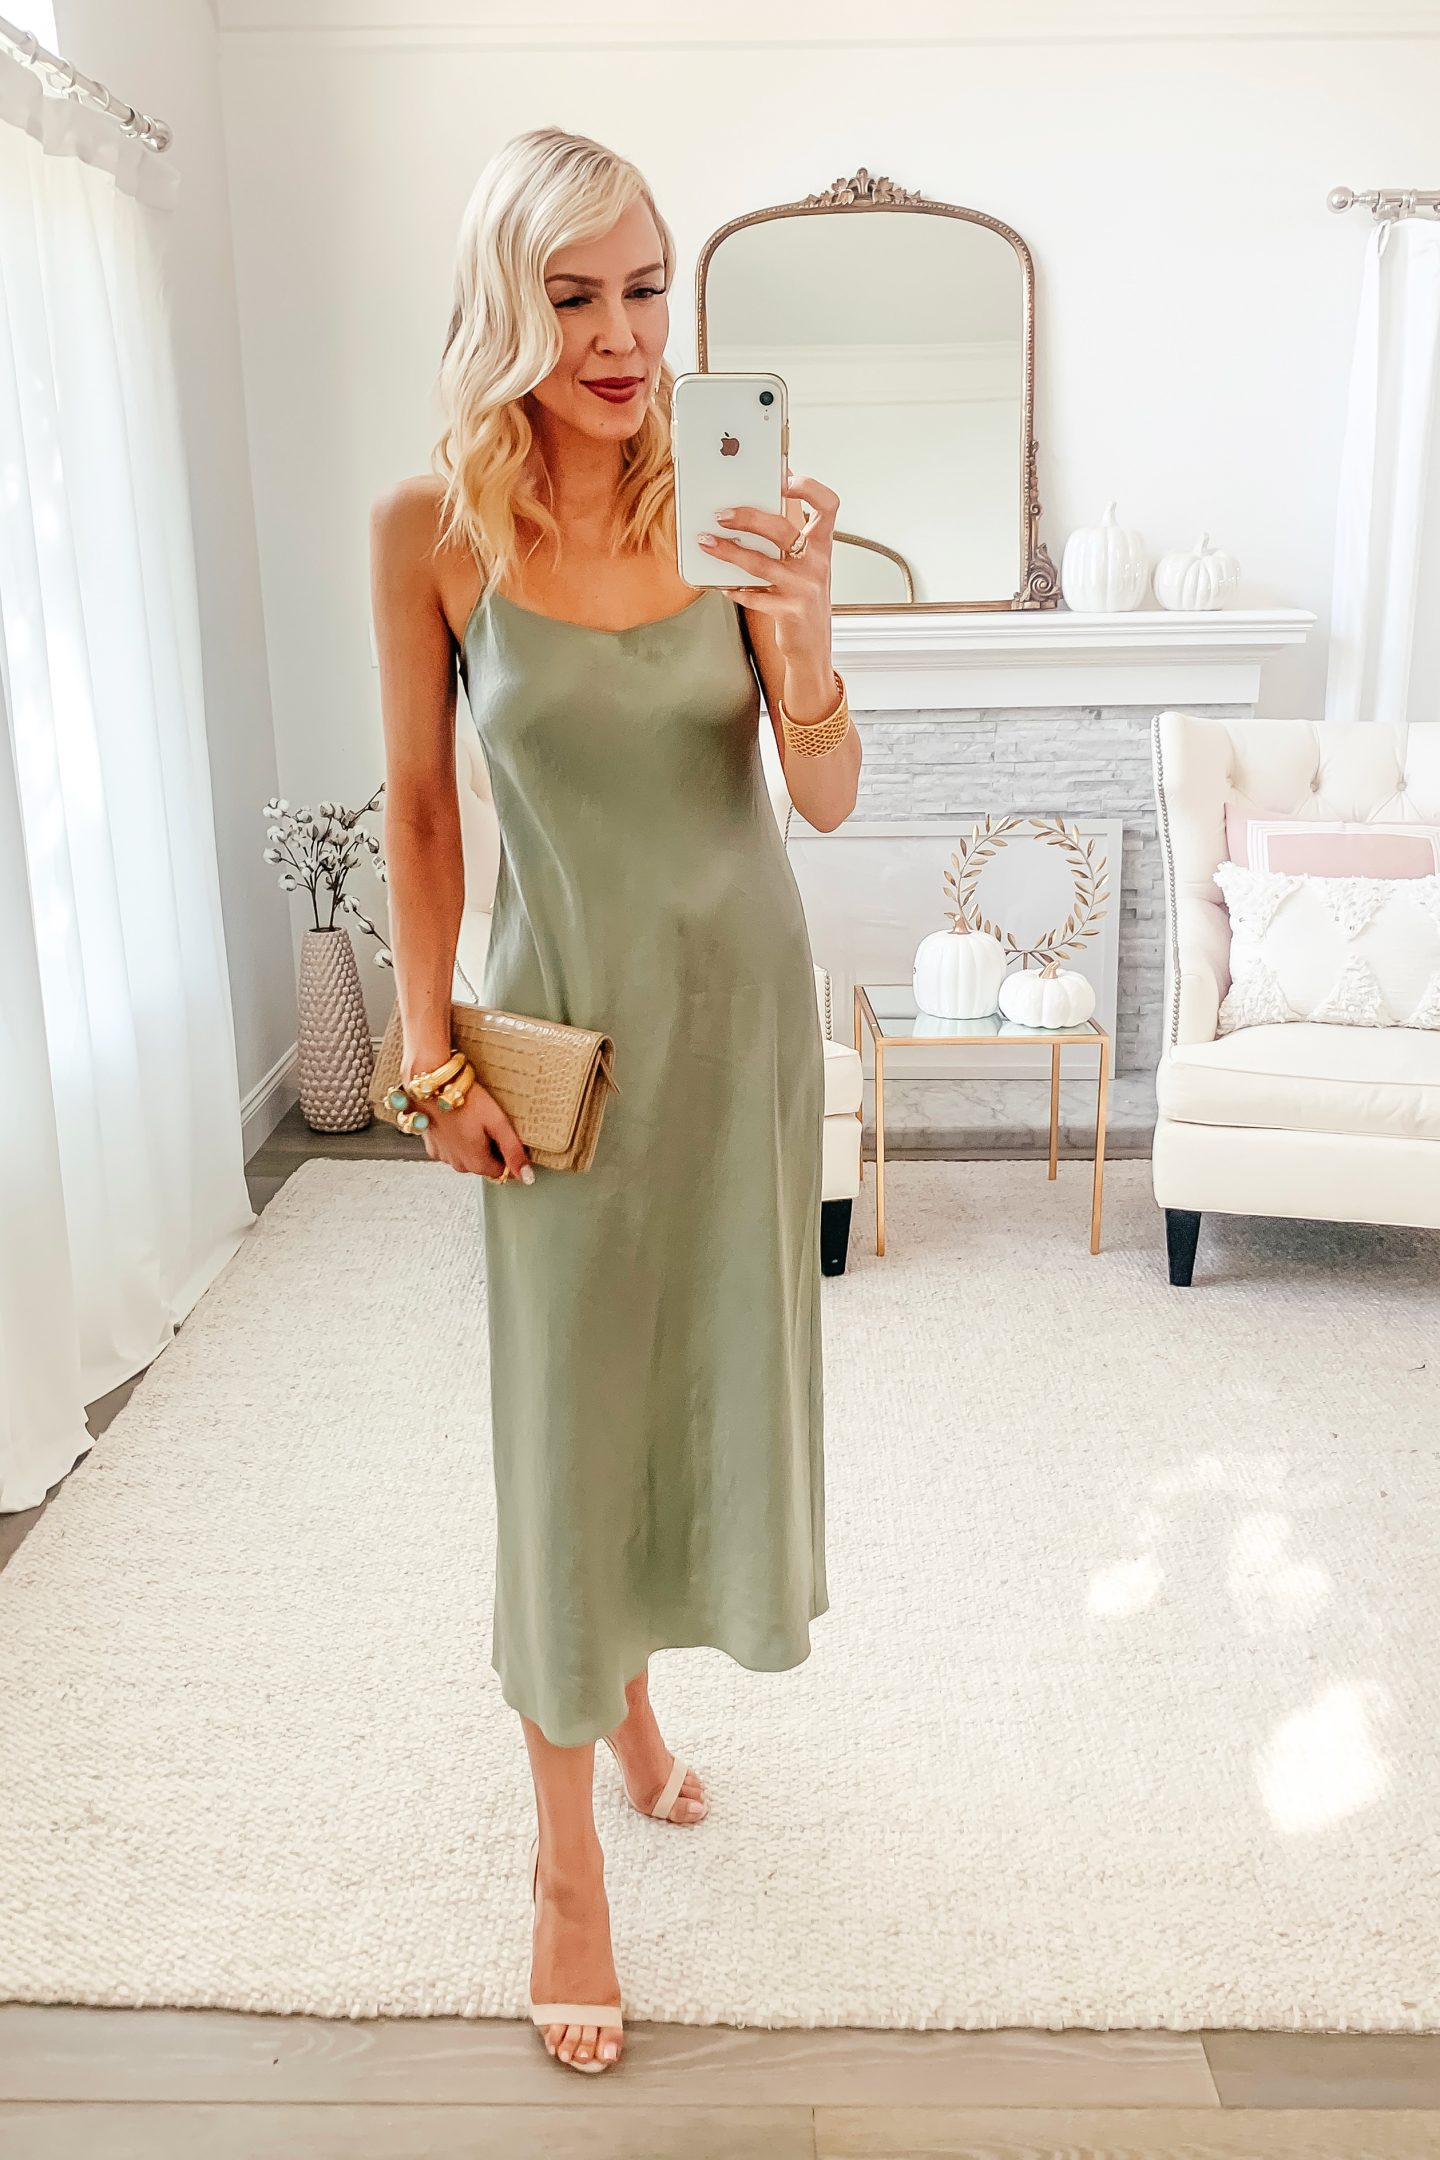 Vince satin slip dress styled 5 ways, featured by top San Francisco fashion blogger Lombard and Fifth.